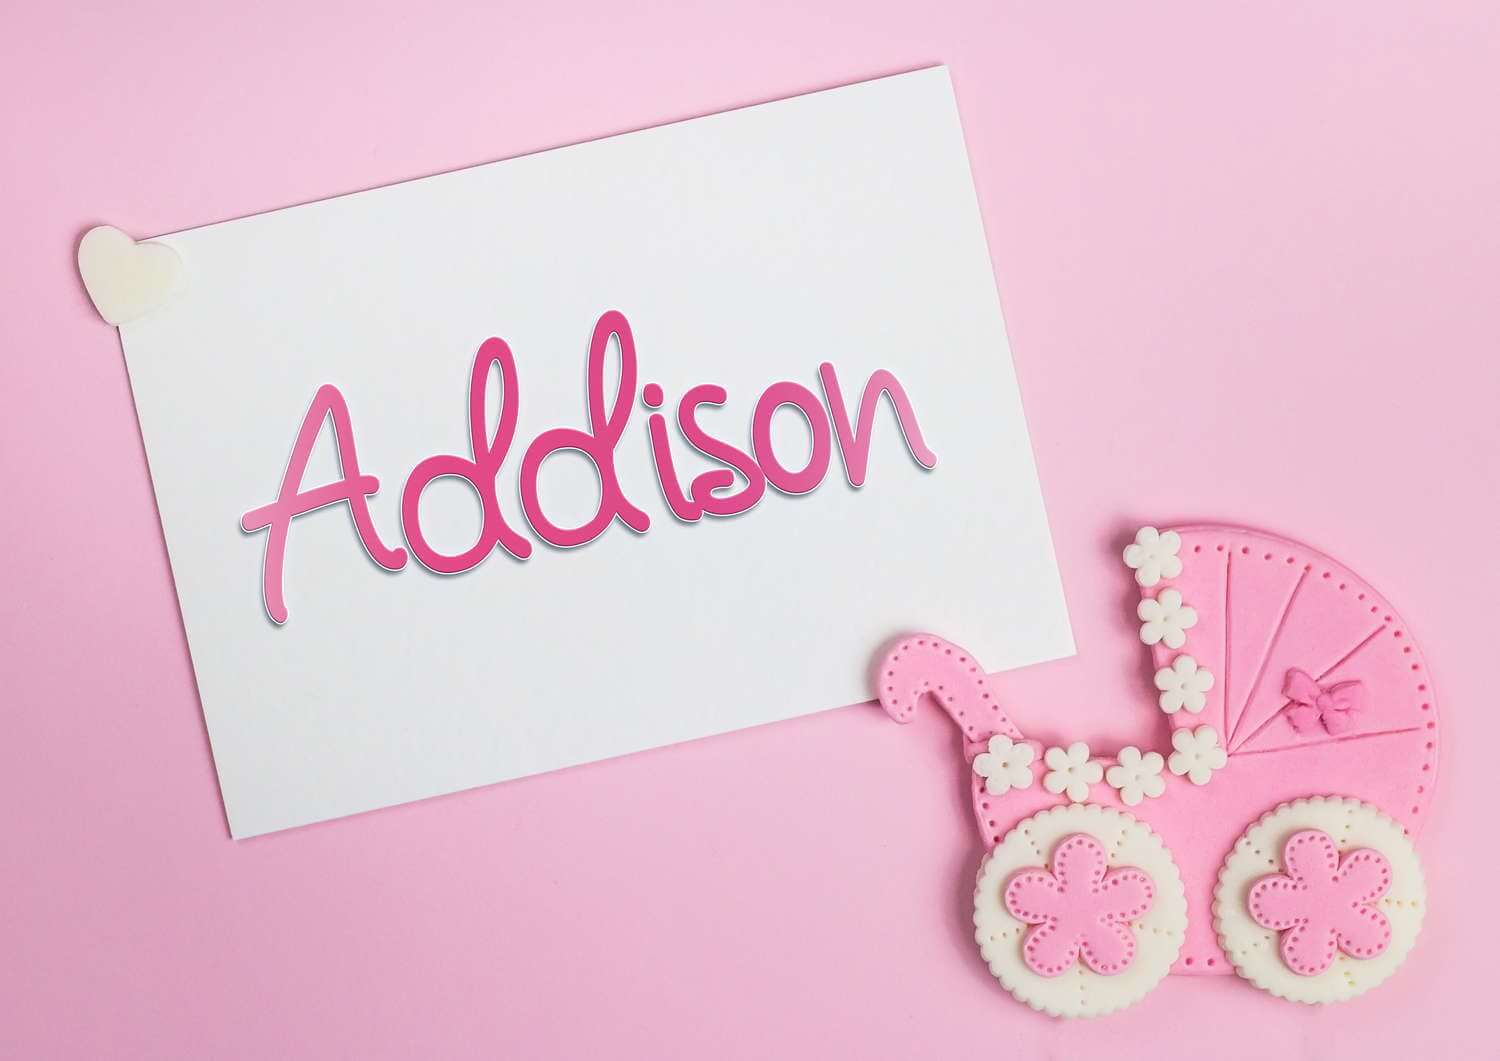 Addison Baby Name